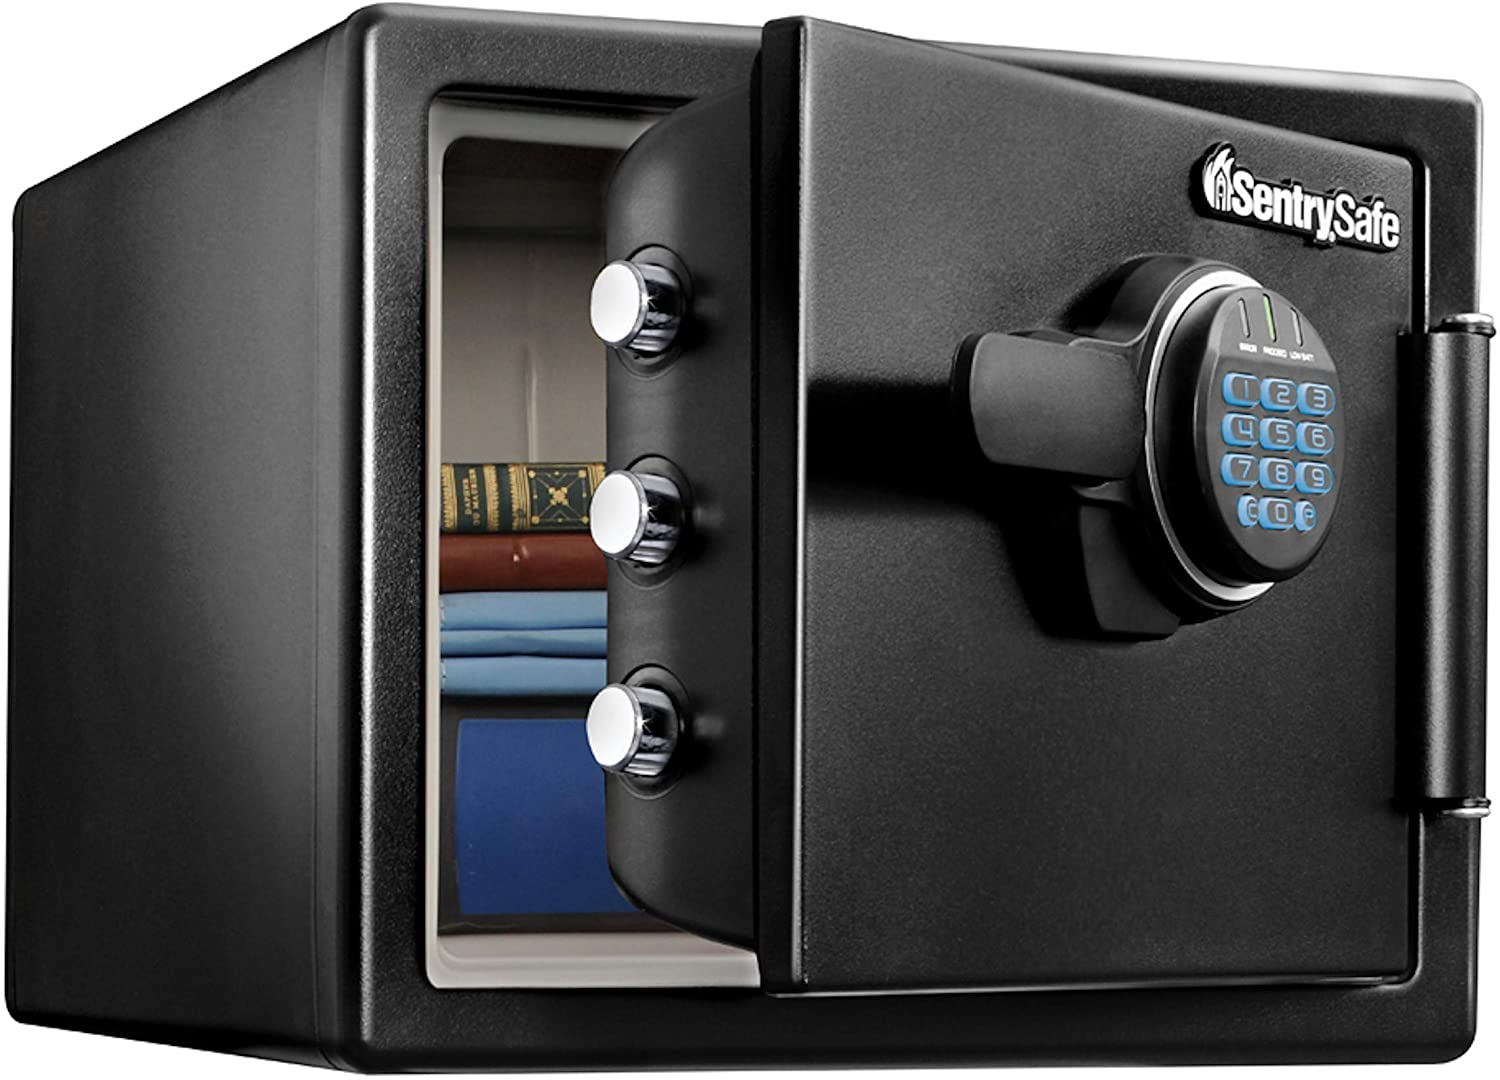 Which is the best small fireproof waterproof safe?